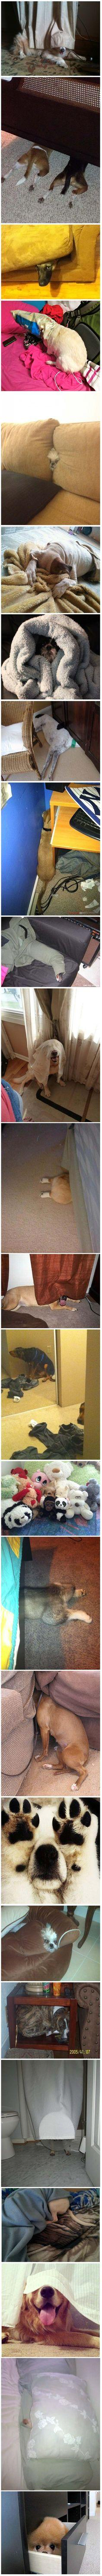 25 Dogs That Suck At Hide And Seek | I Think My Moms Gone CrazyI Think My Moms Gone Crazy: Cuties, Can T, Silly Dogs, Funny, Puppy, Things, 25 Dogs, Case, Animal